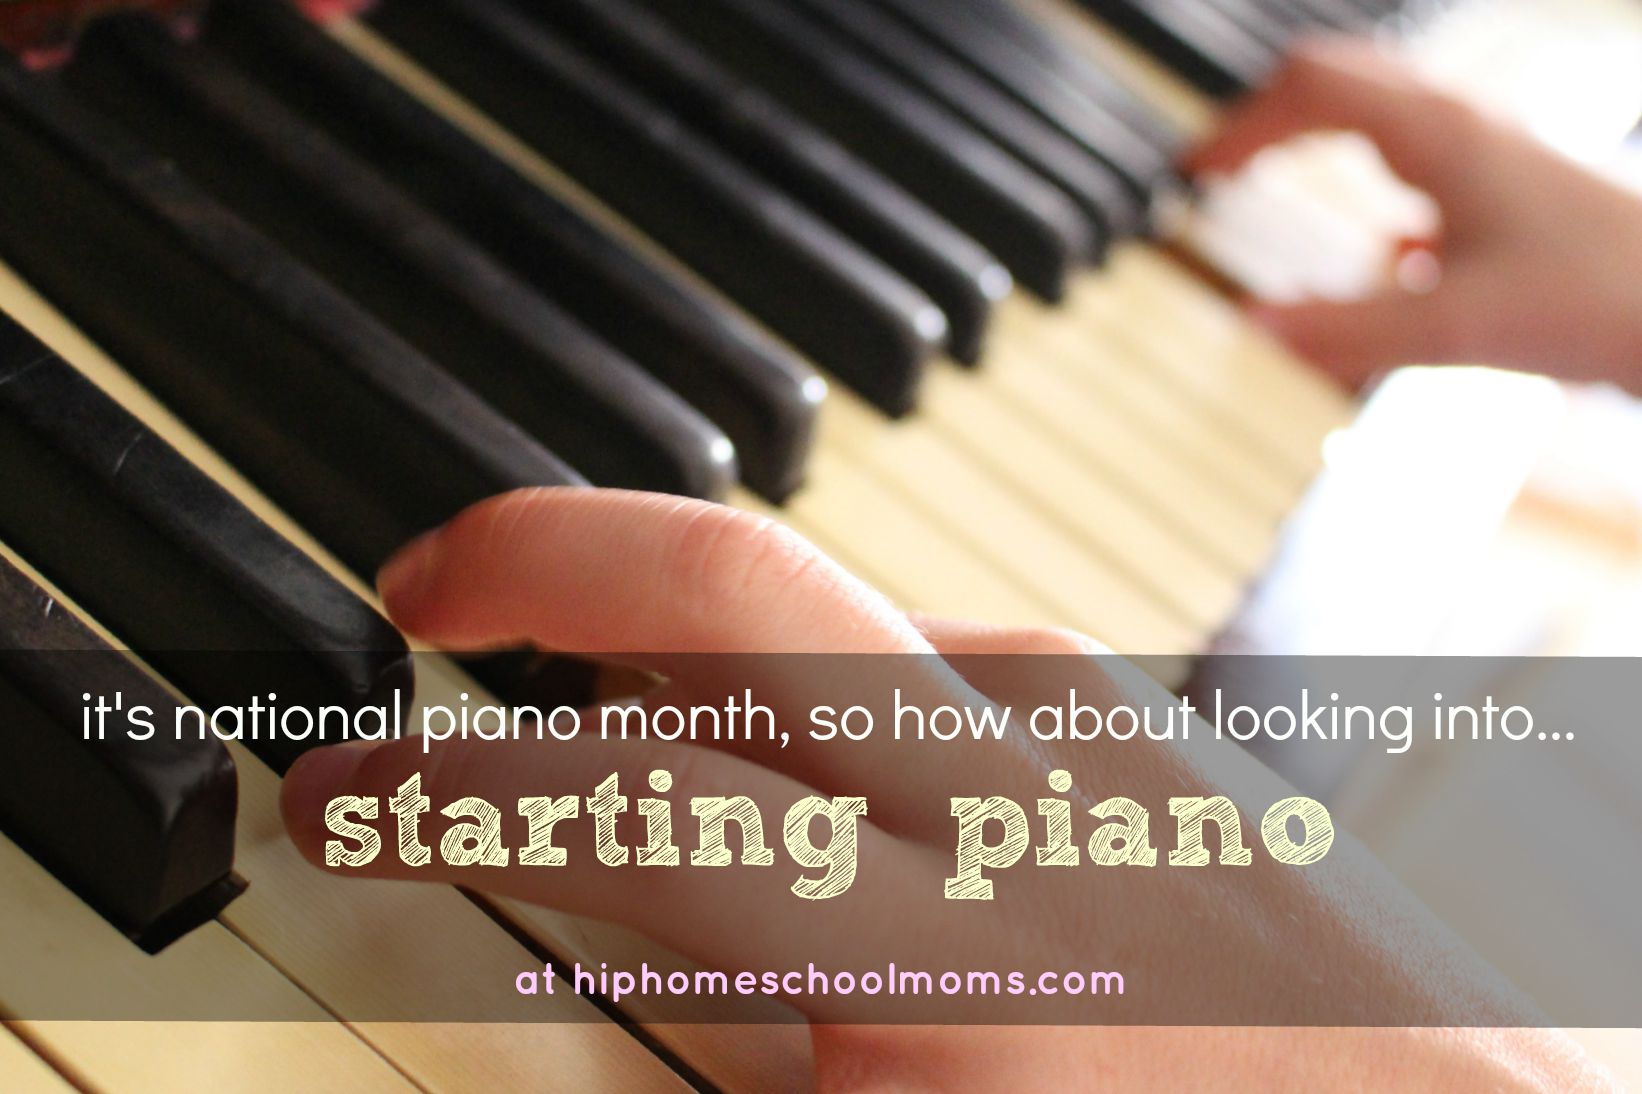 Starting Piano in National Piano Month